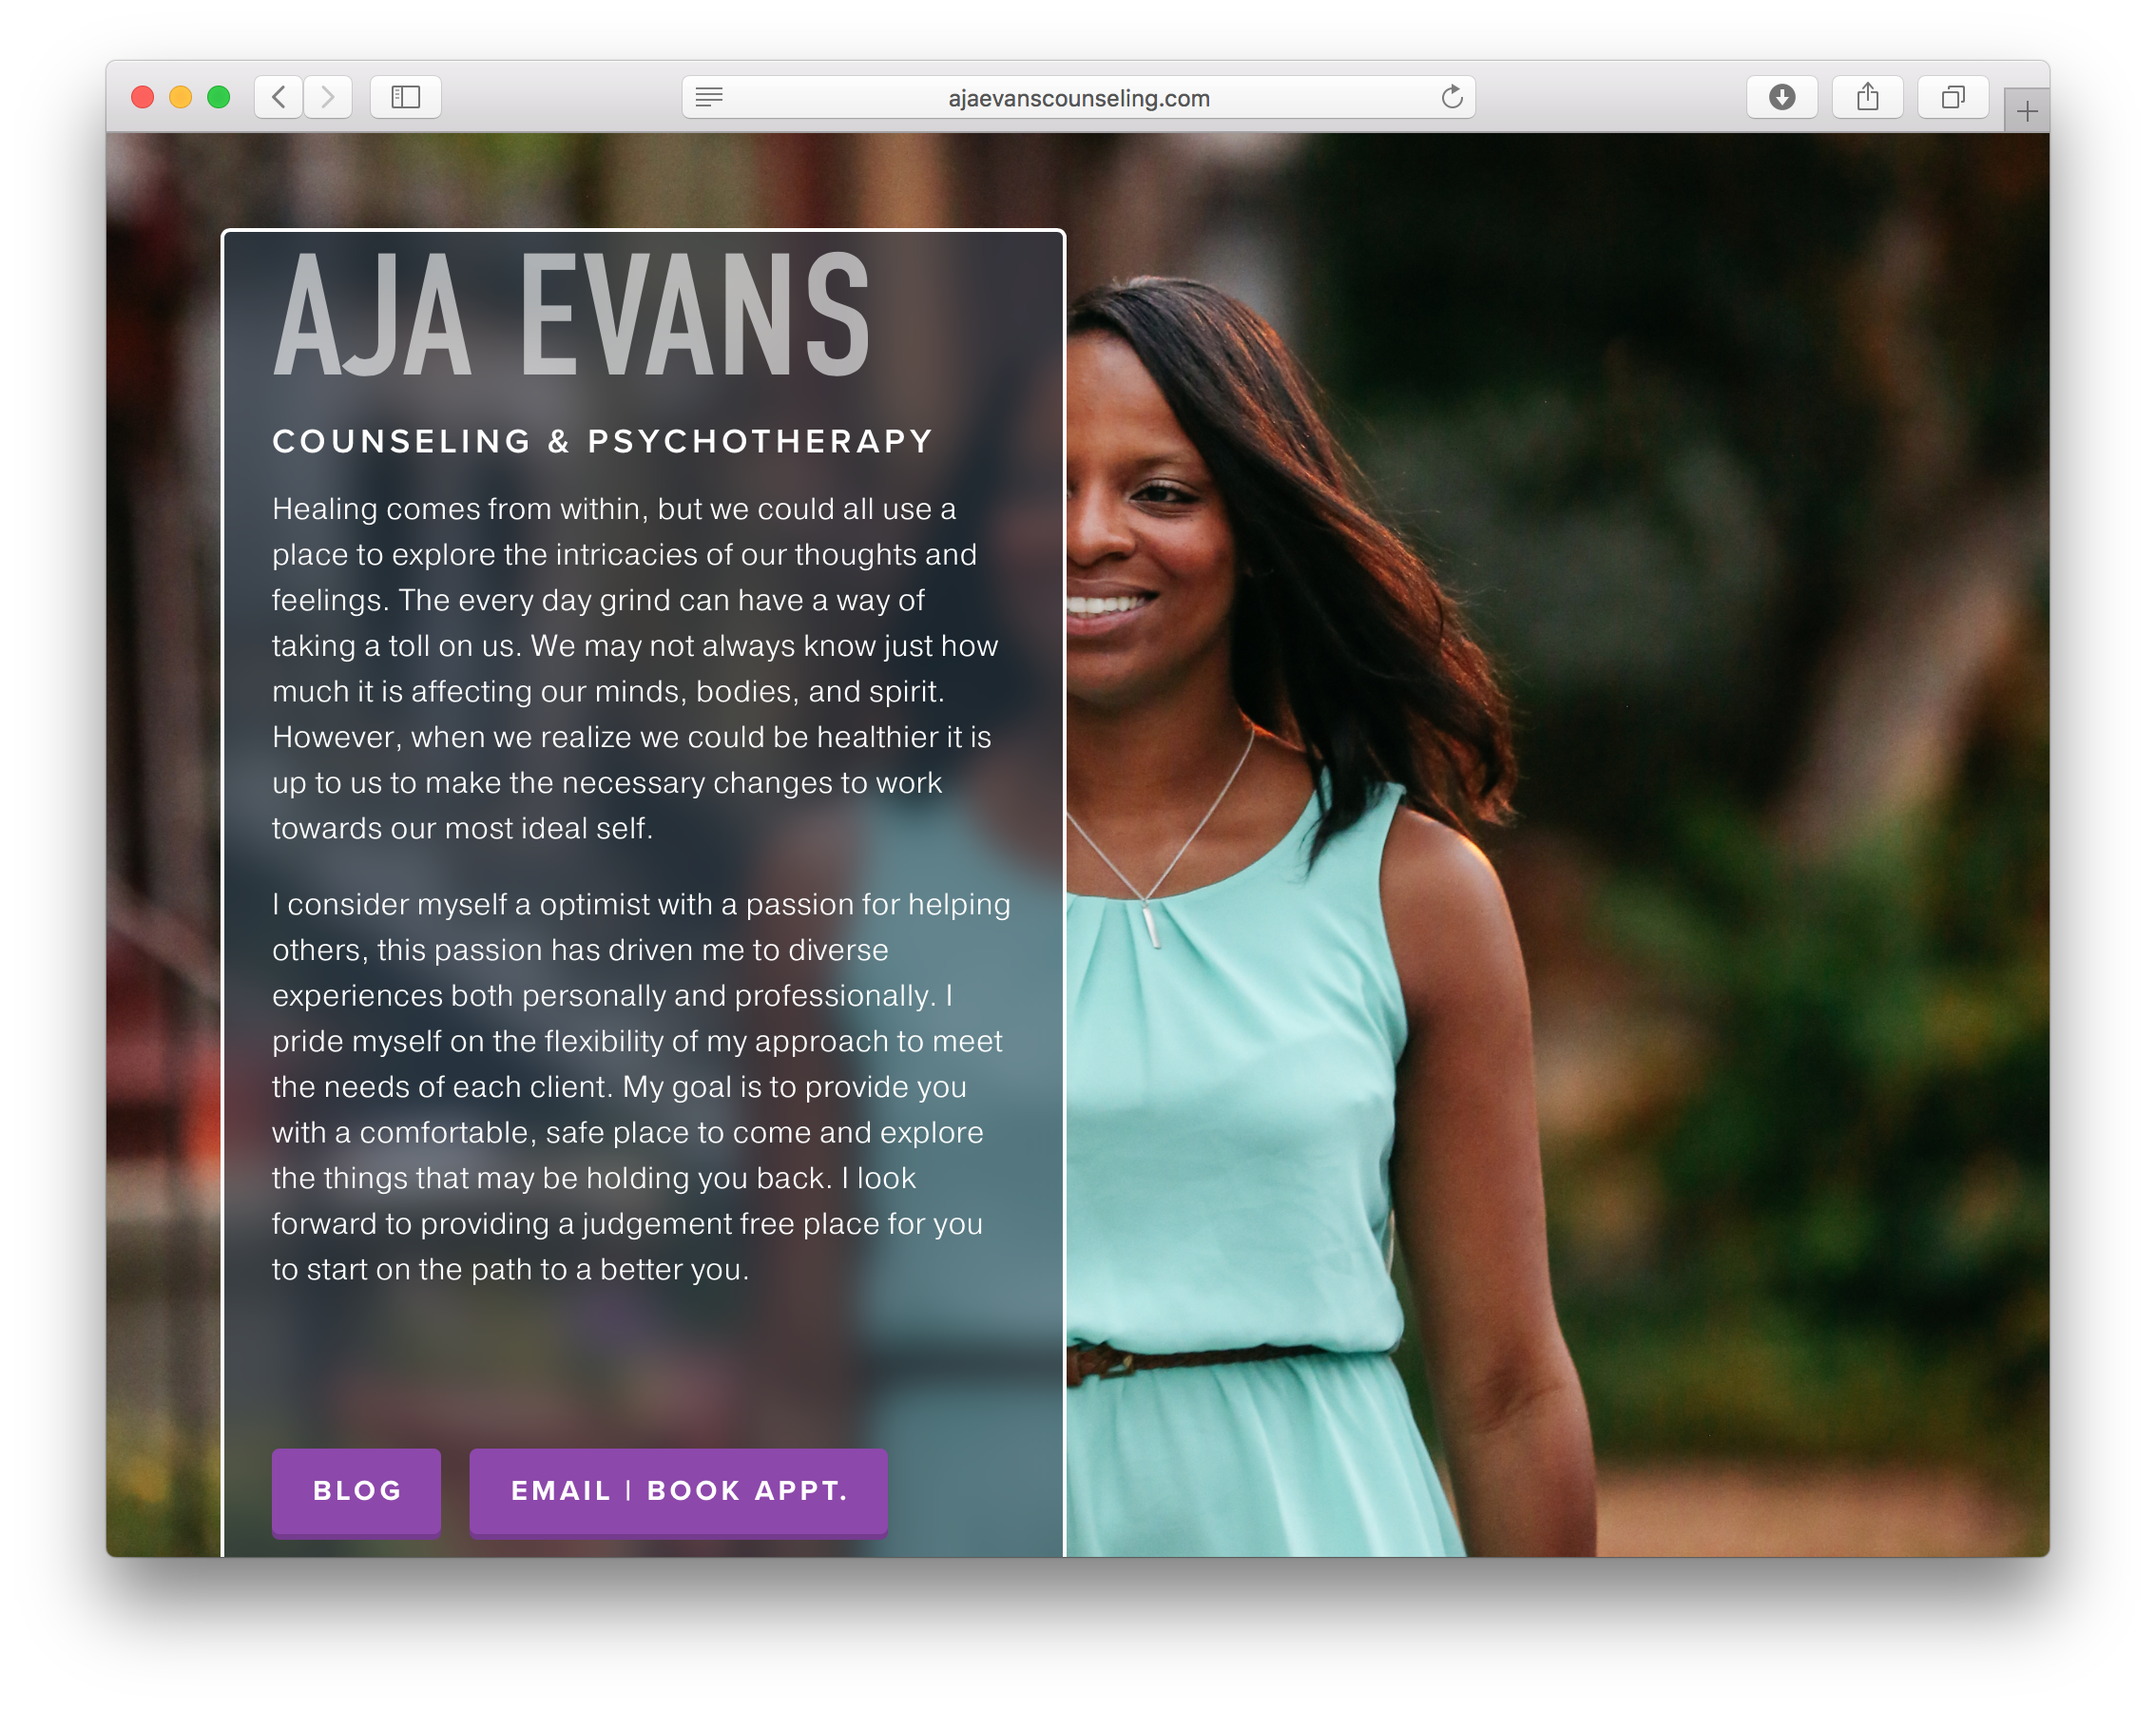 Aja Evans Counseling